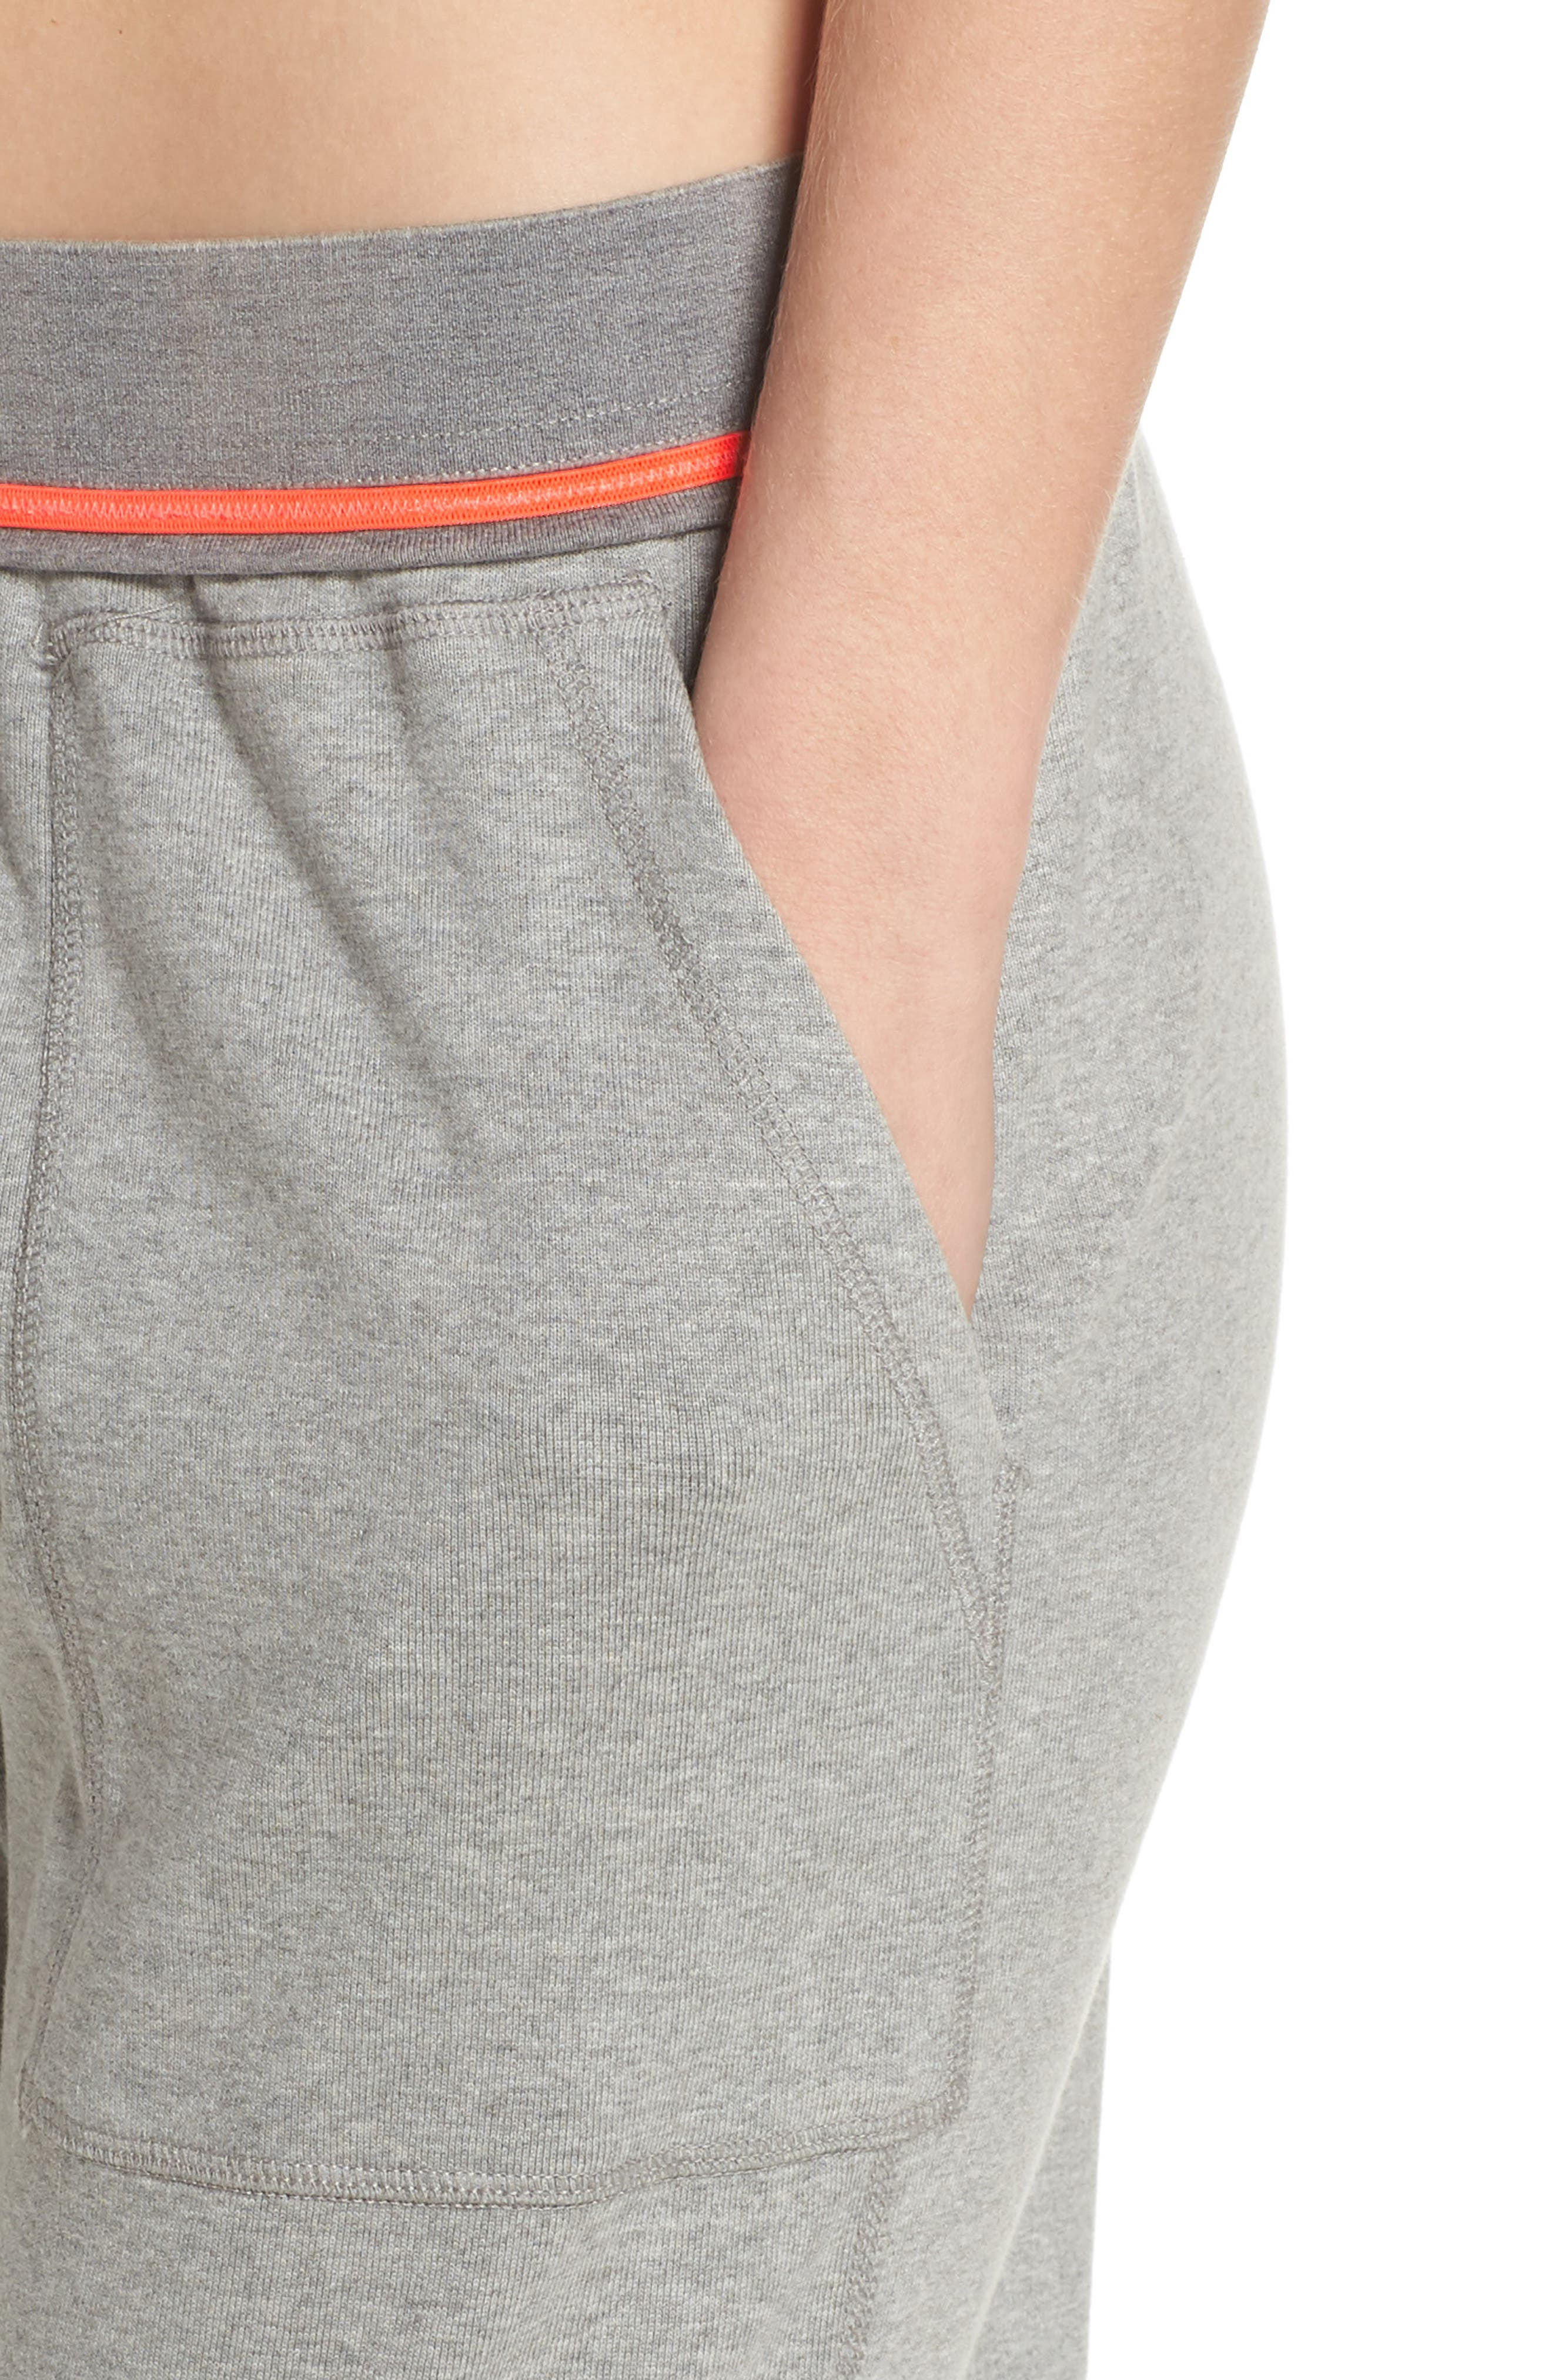 FREE PEOPLE MOVEMENT,                             Jordan Sweatpants,                             Alternate thumbnail 5, color,                             030